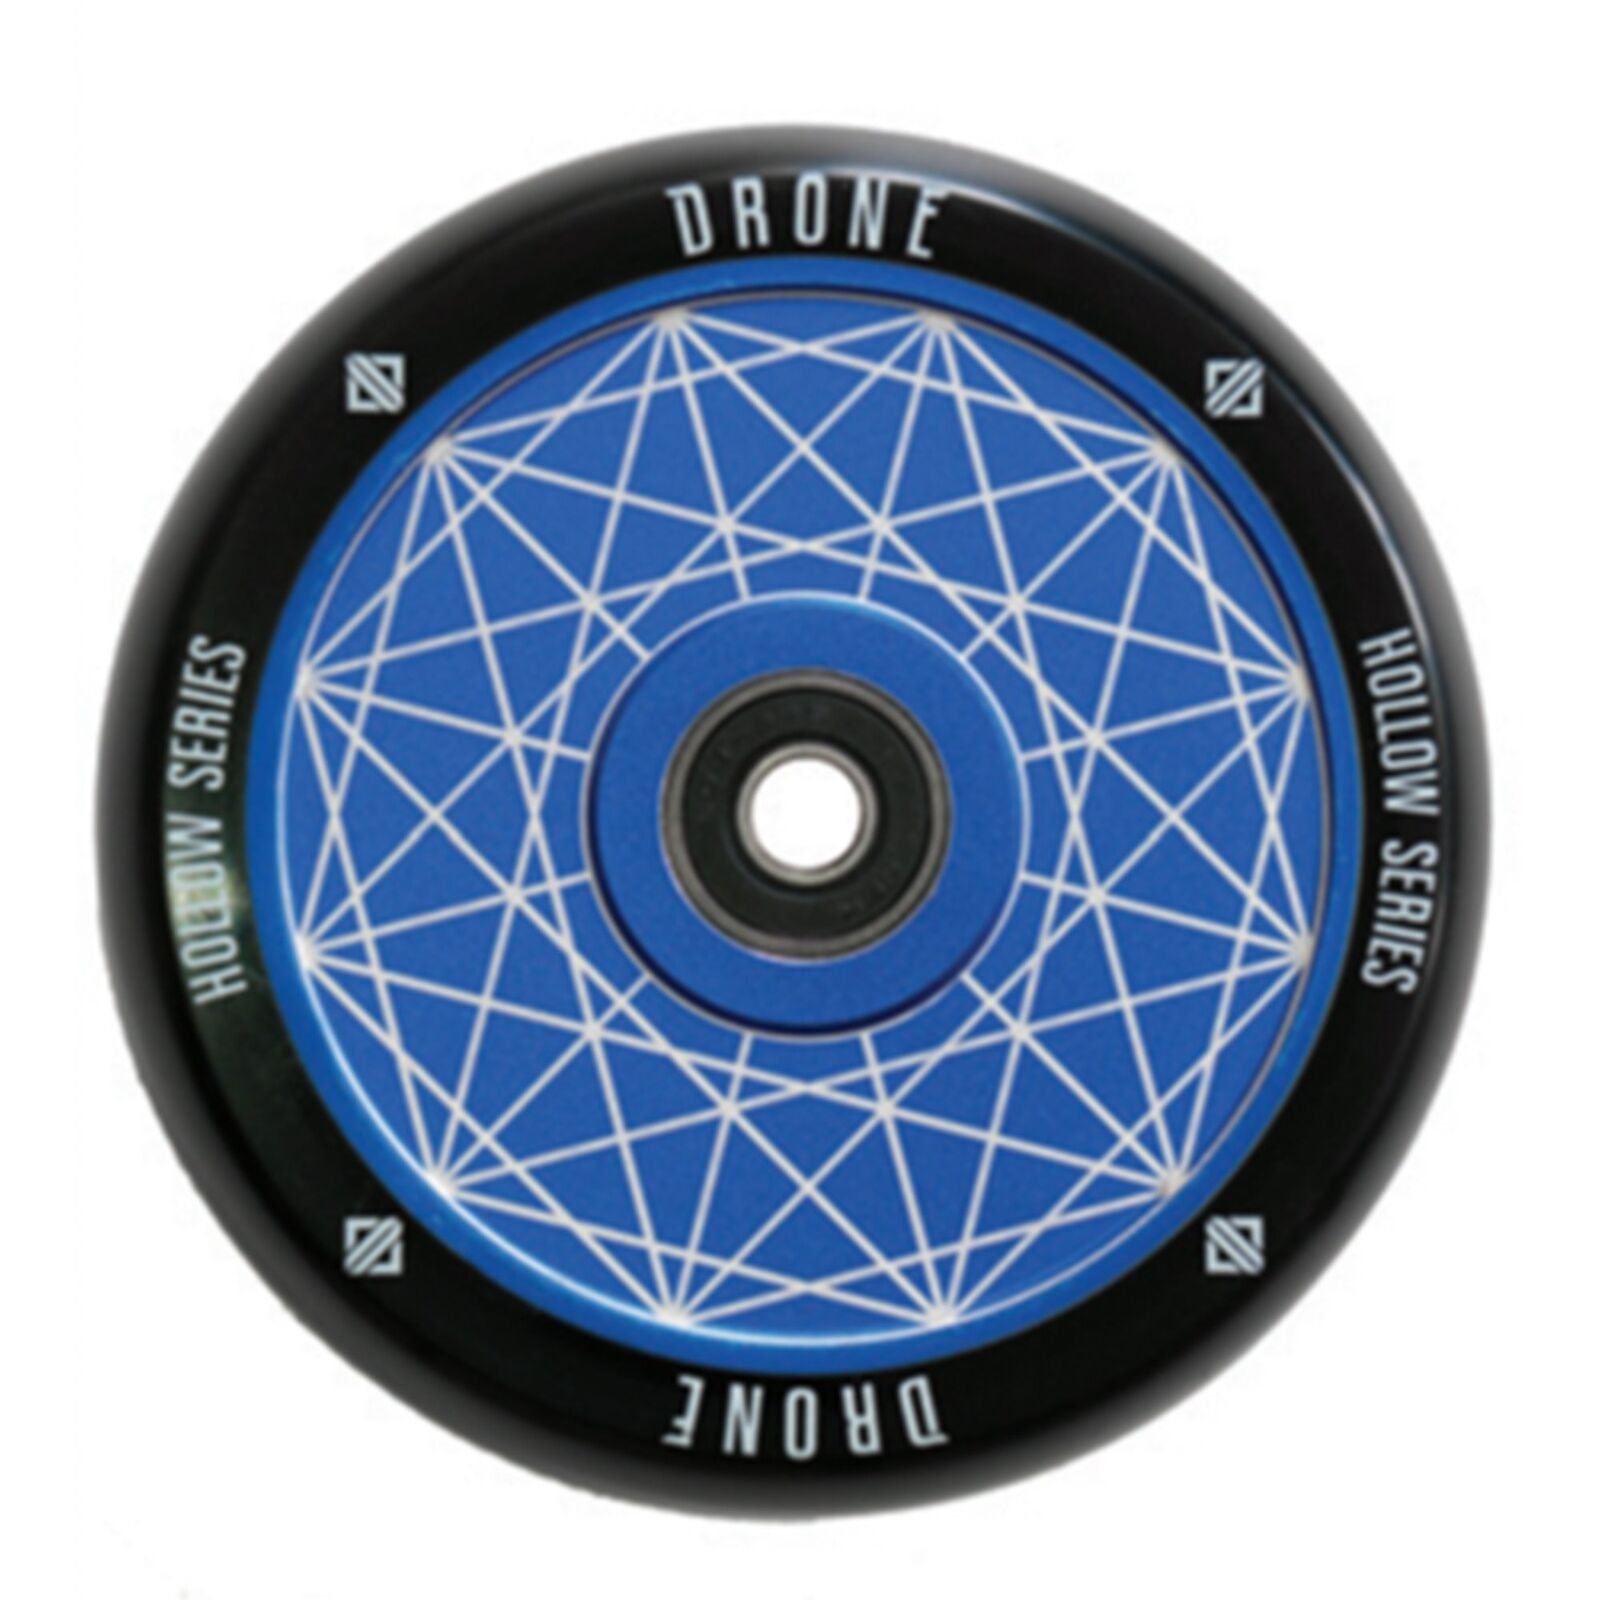 Drone Scooters Featherlight Hollow Core Scooter Wheel, Prism